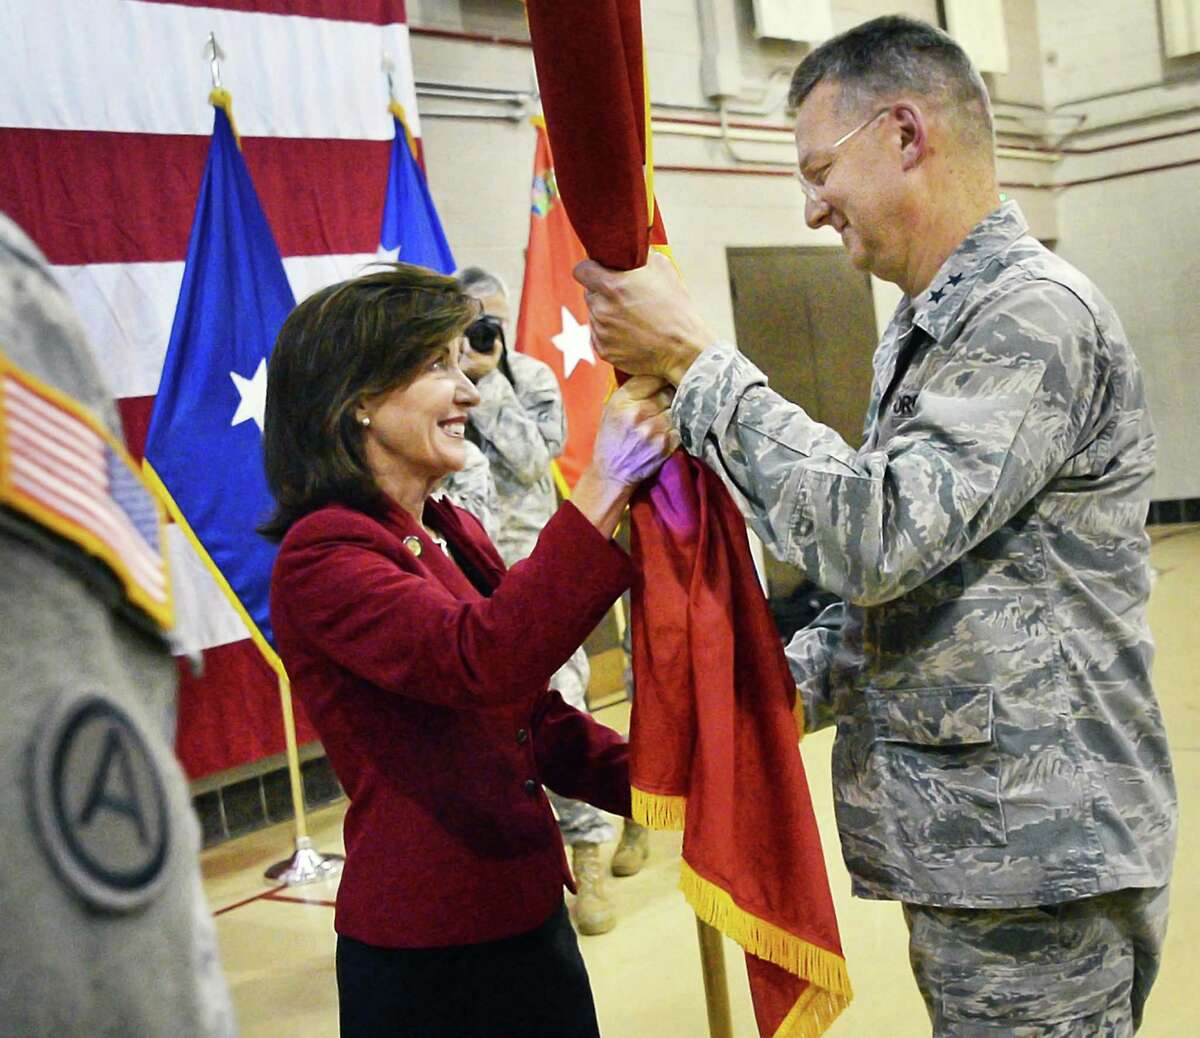 Lieutenant Governor Kathy Hochul, left, participates in the traditional flag-passing ceremony as Major General Anthony German takes over as the 53rd Adjutant General of New York in a ceremony at the NYS Div. of Military and Naval Affairs Thursday April 7, 2016 in Colonie, NY. (John Carl D'Annibale / Times Union)